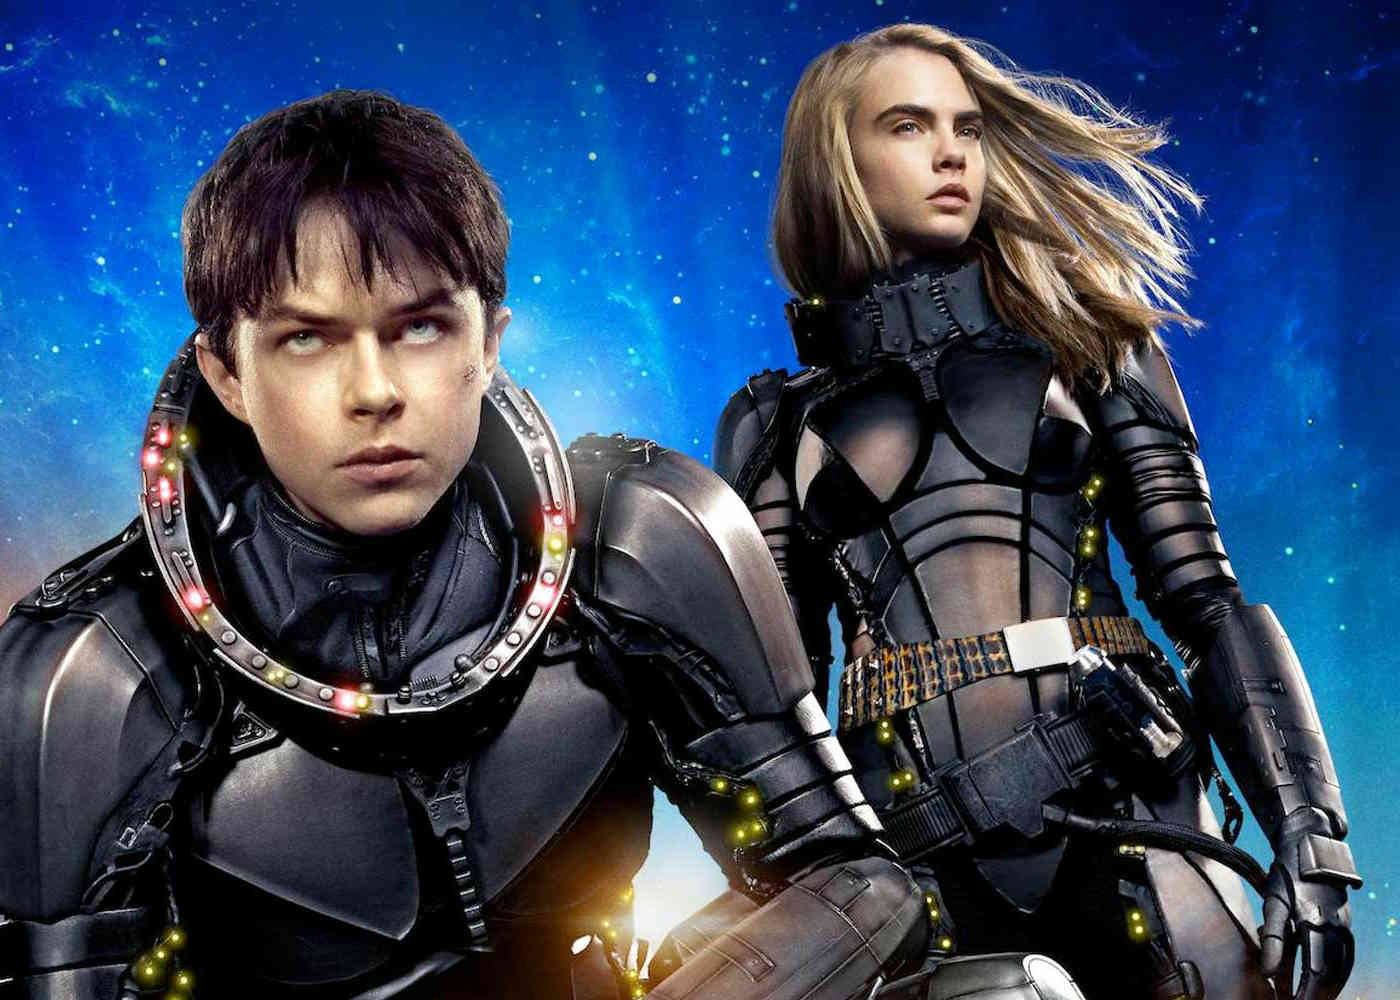 Valerian and the City of a Thousand Planets Floats in a Most Peculiar Way